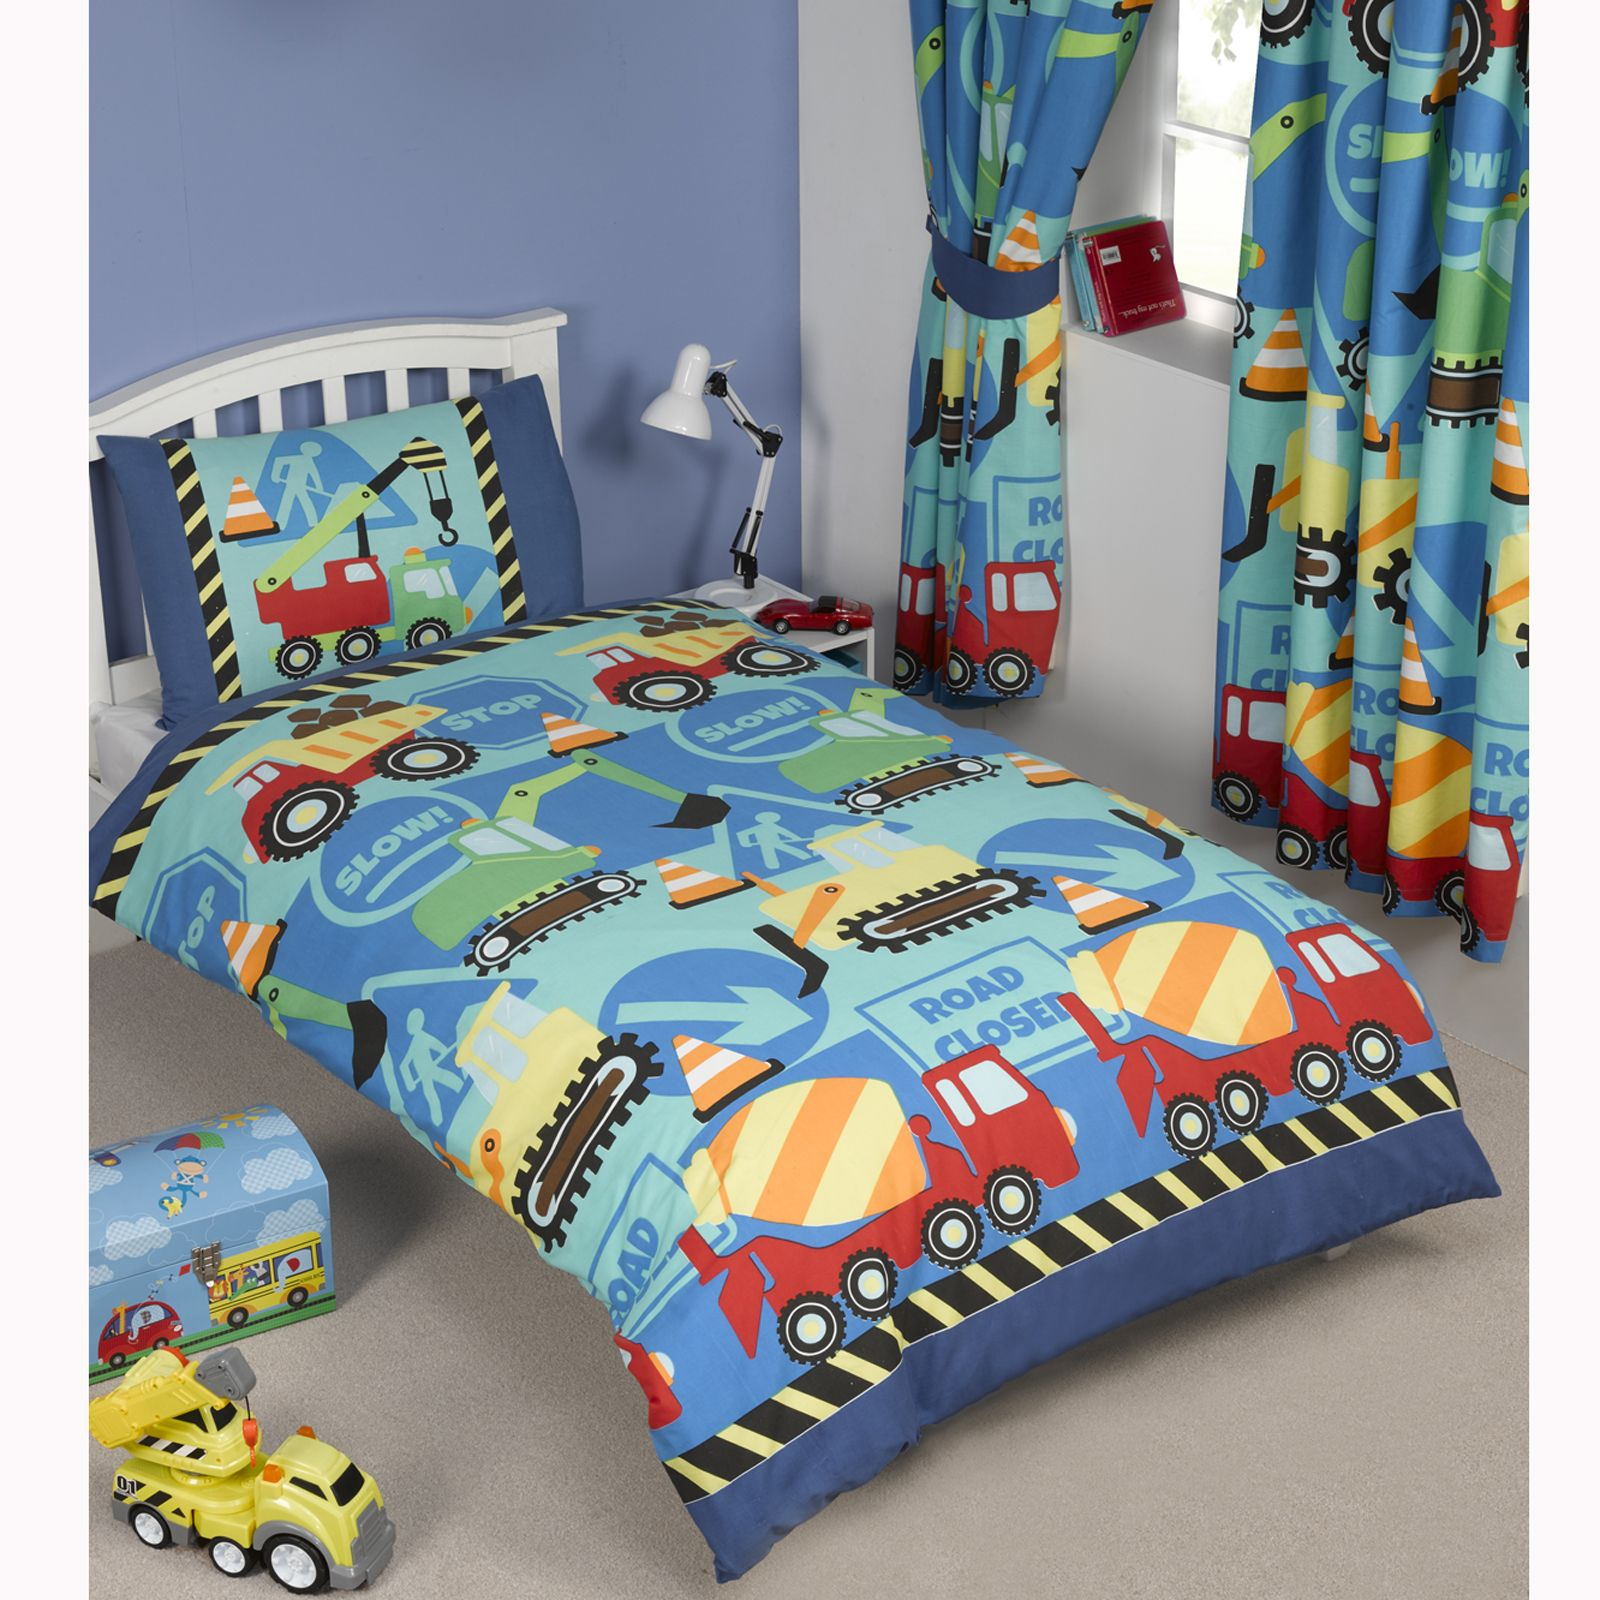 junior kleinkind bettbezug sets kinderbett bettw sche. Black Bedroom Furniture Sets. Home Design Ideas